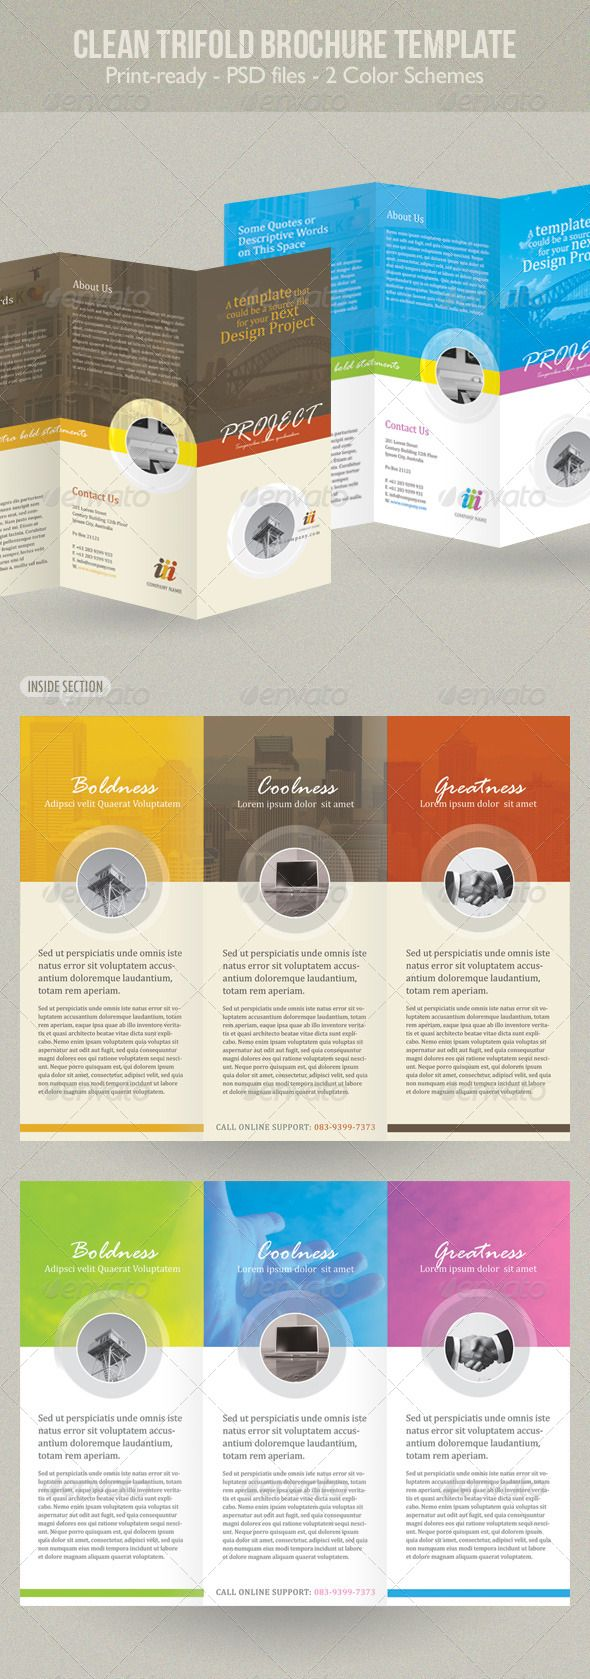 Clean Trifold Brochure Template - More info on how to get the template can be found here: http://graphicriver.net/item/clean-trifold-brochure-template/234251?r=kinzi21